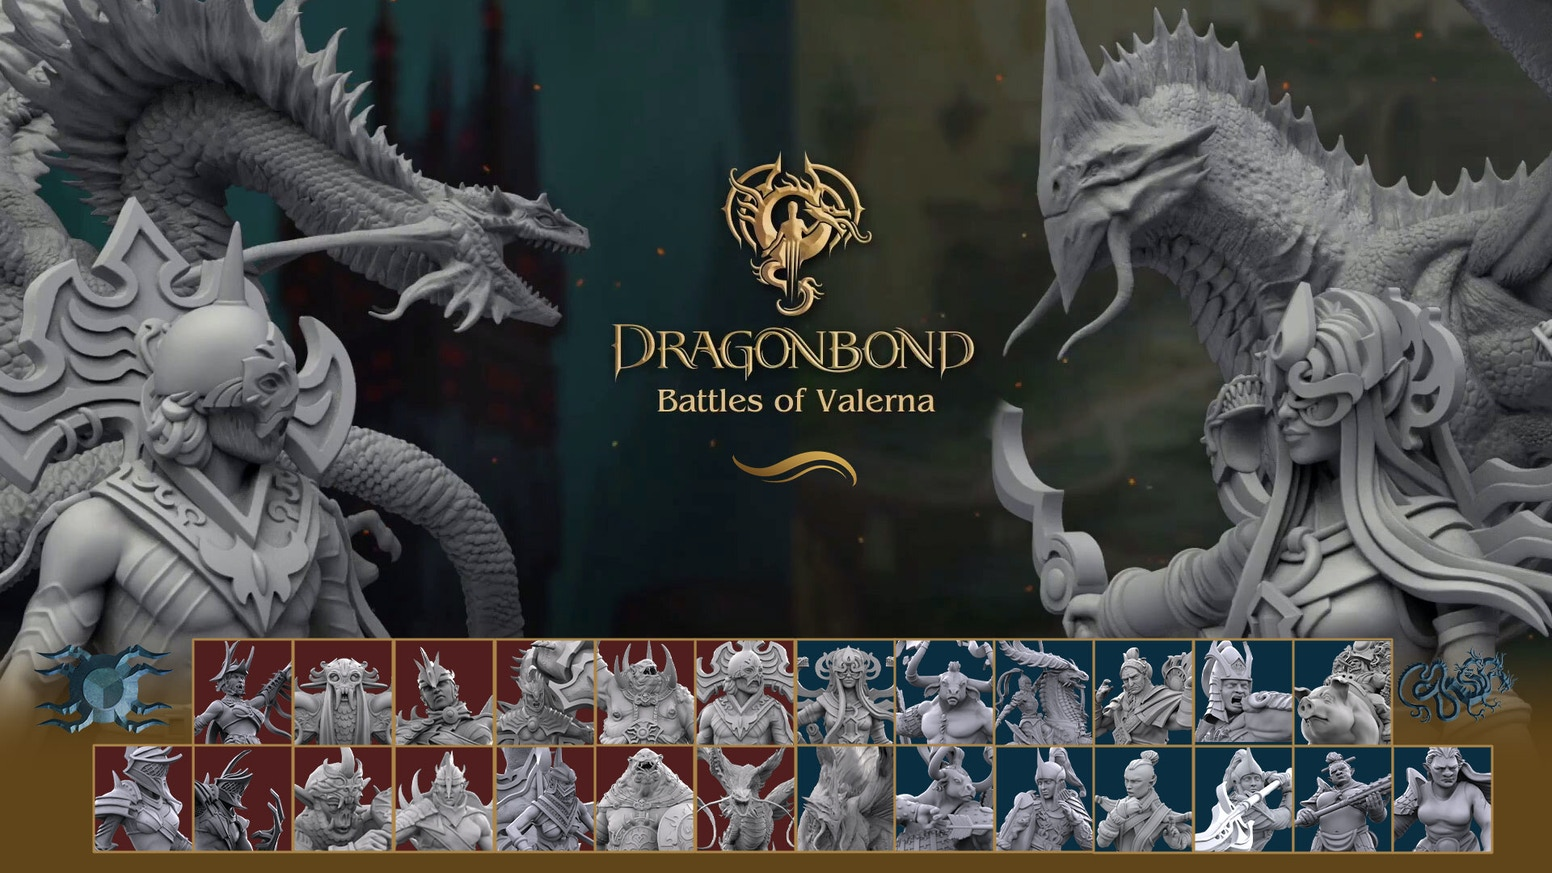 Full wargame experience in the Dragonbond universe. High definition STL files for 3D printing, RPG, wargaming, collectibles.